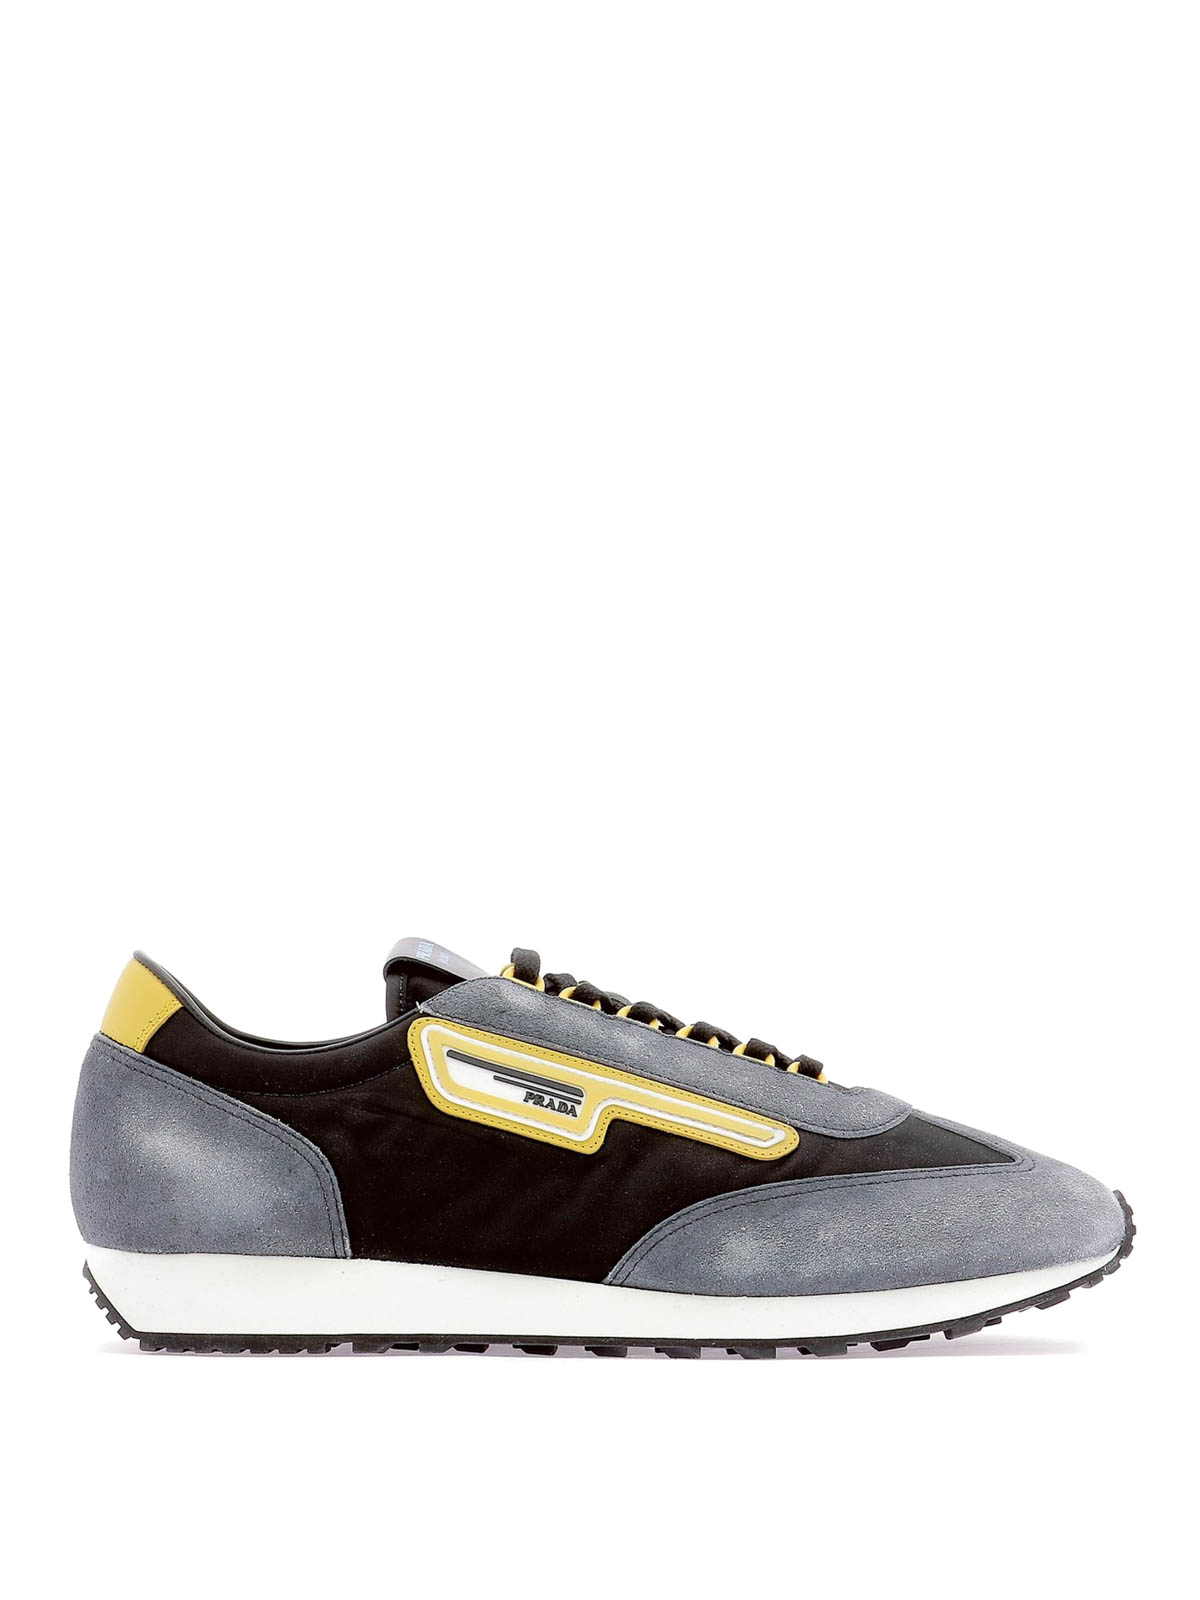 39c1a8d81b Prada - Fabric and used suede sneakers - trainers - 2EG2763KUYF0002